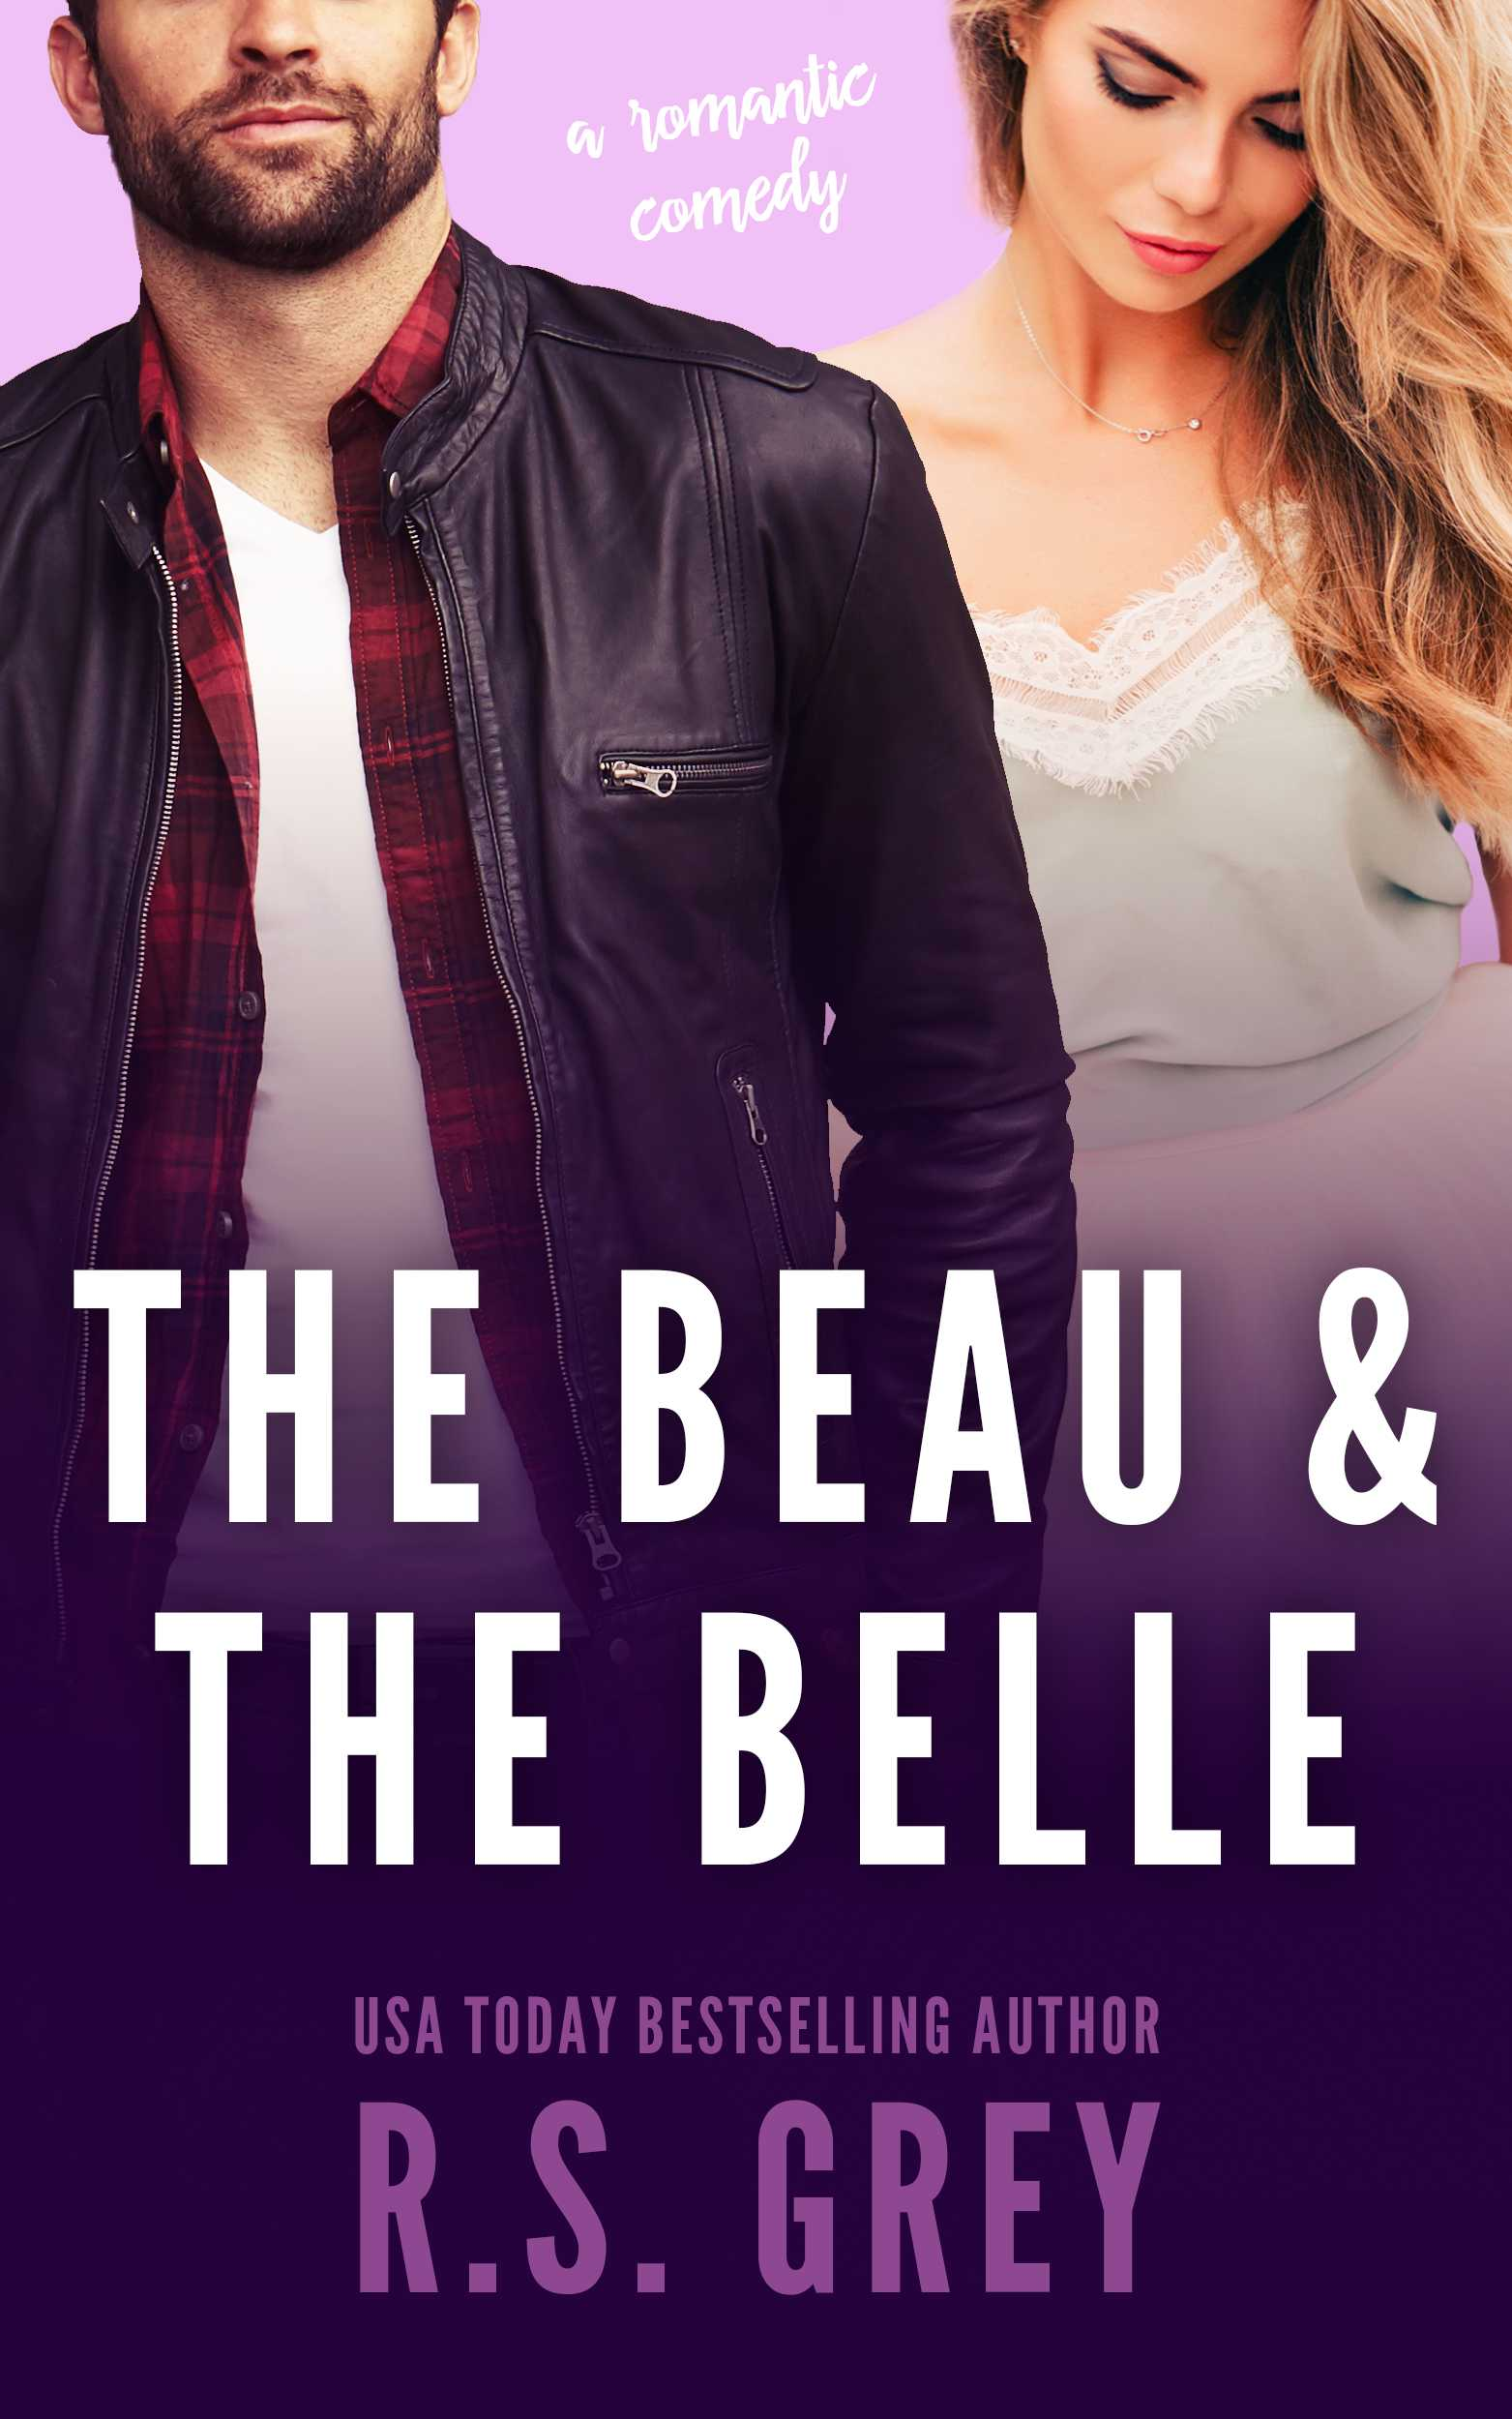 Excerpt: The Beau & The Belle